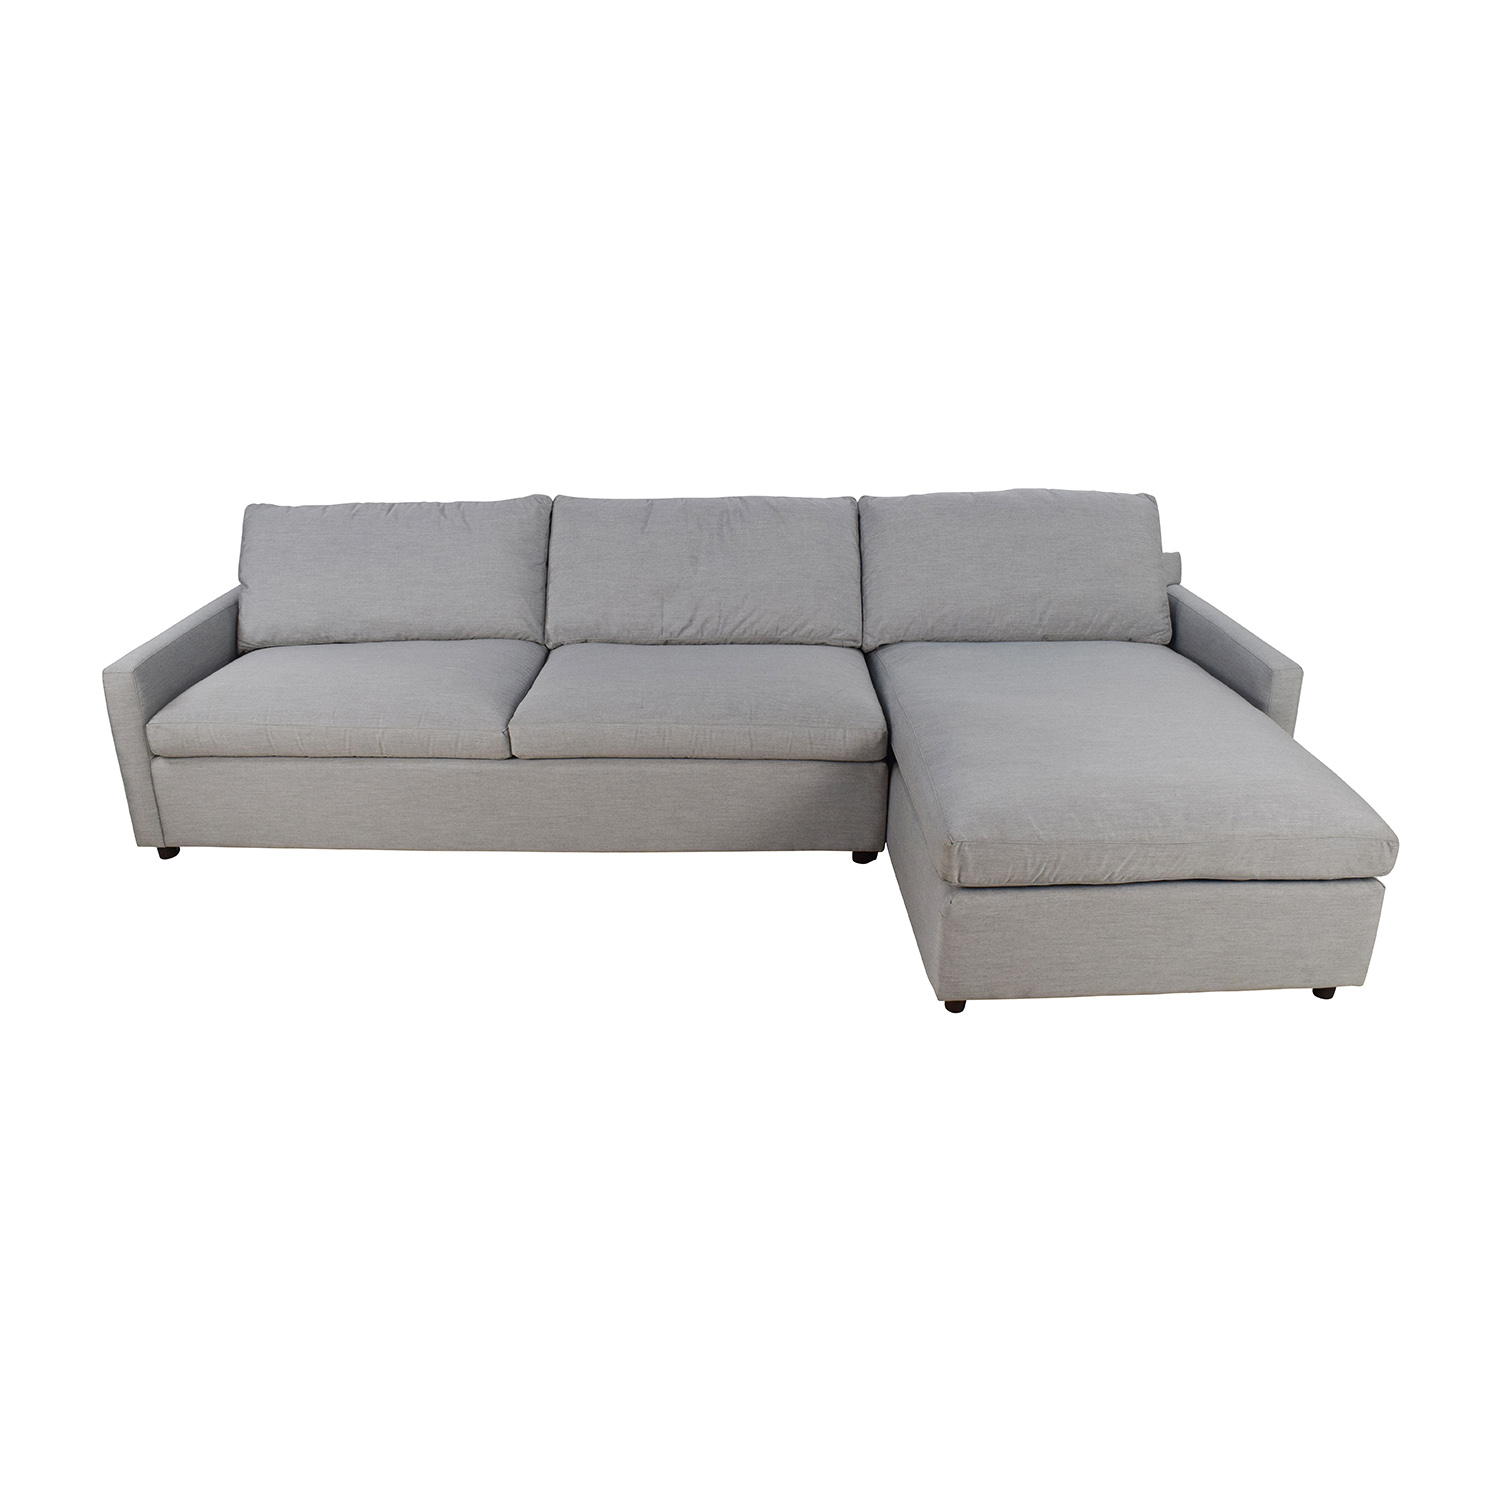 ☆■sleeper sofa Holiness West Elm Sleeper Sofa Shelter Sofa H